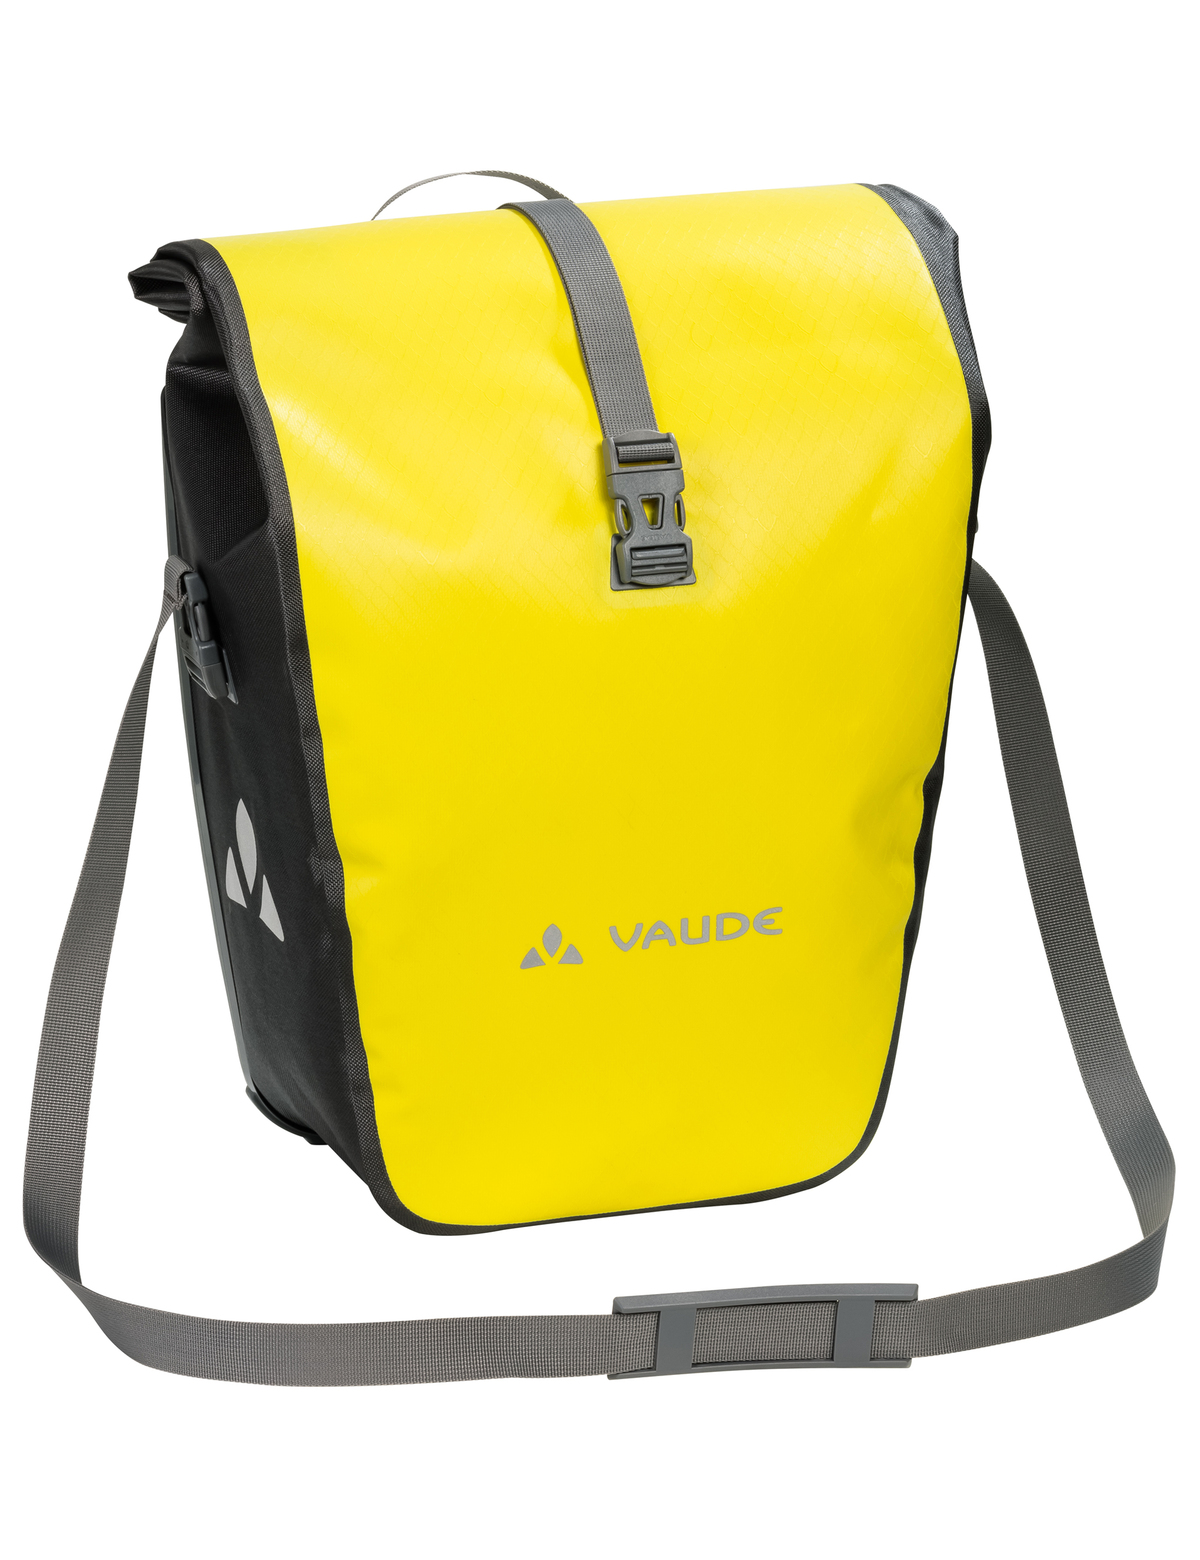 VAUDE Aqua Back Single canary  - VAUDE Aqua Back Single canary